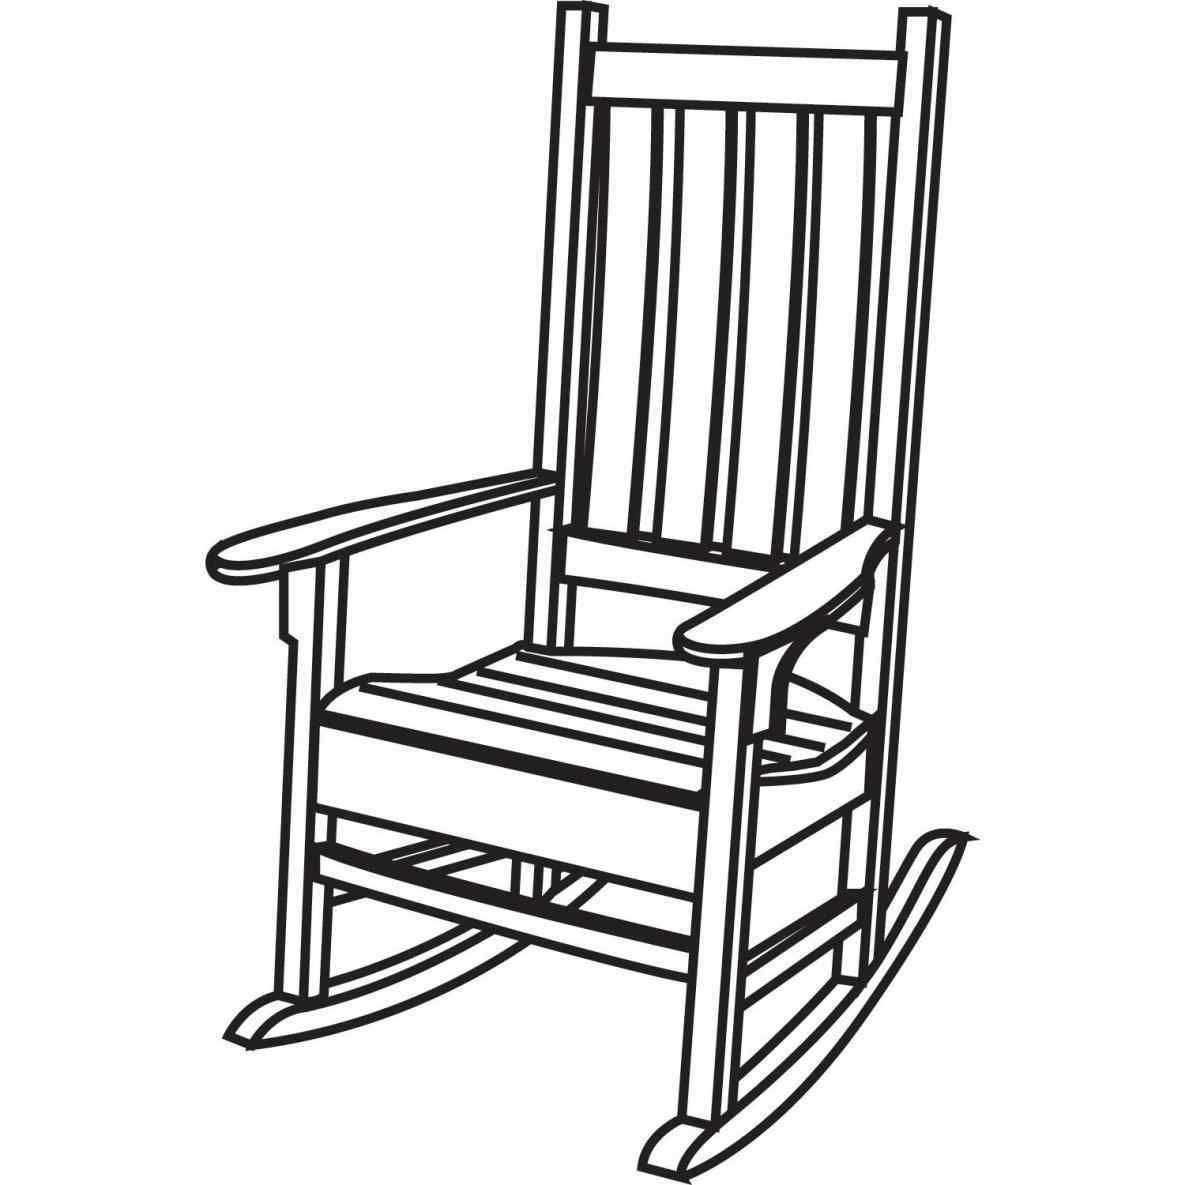 drawing of a chair 17 chair clipart images the graphics fairy drawing of a chair